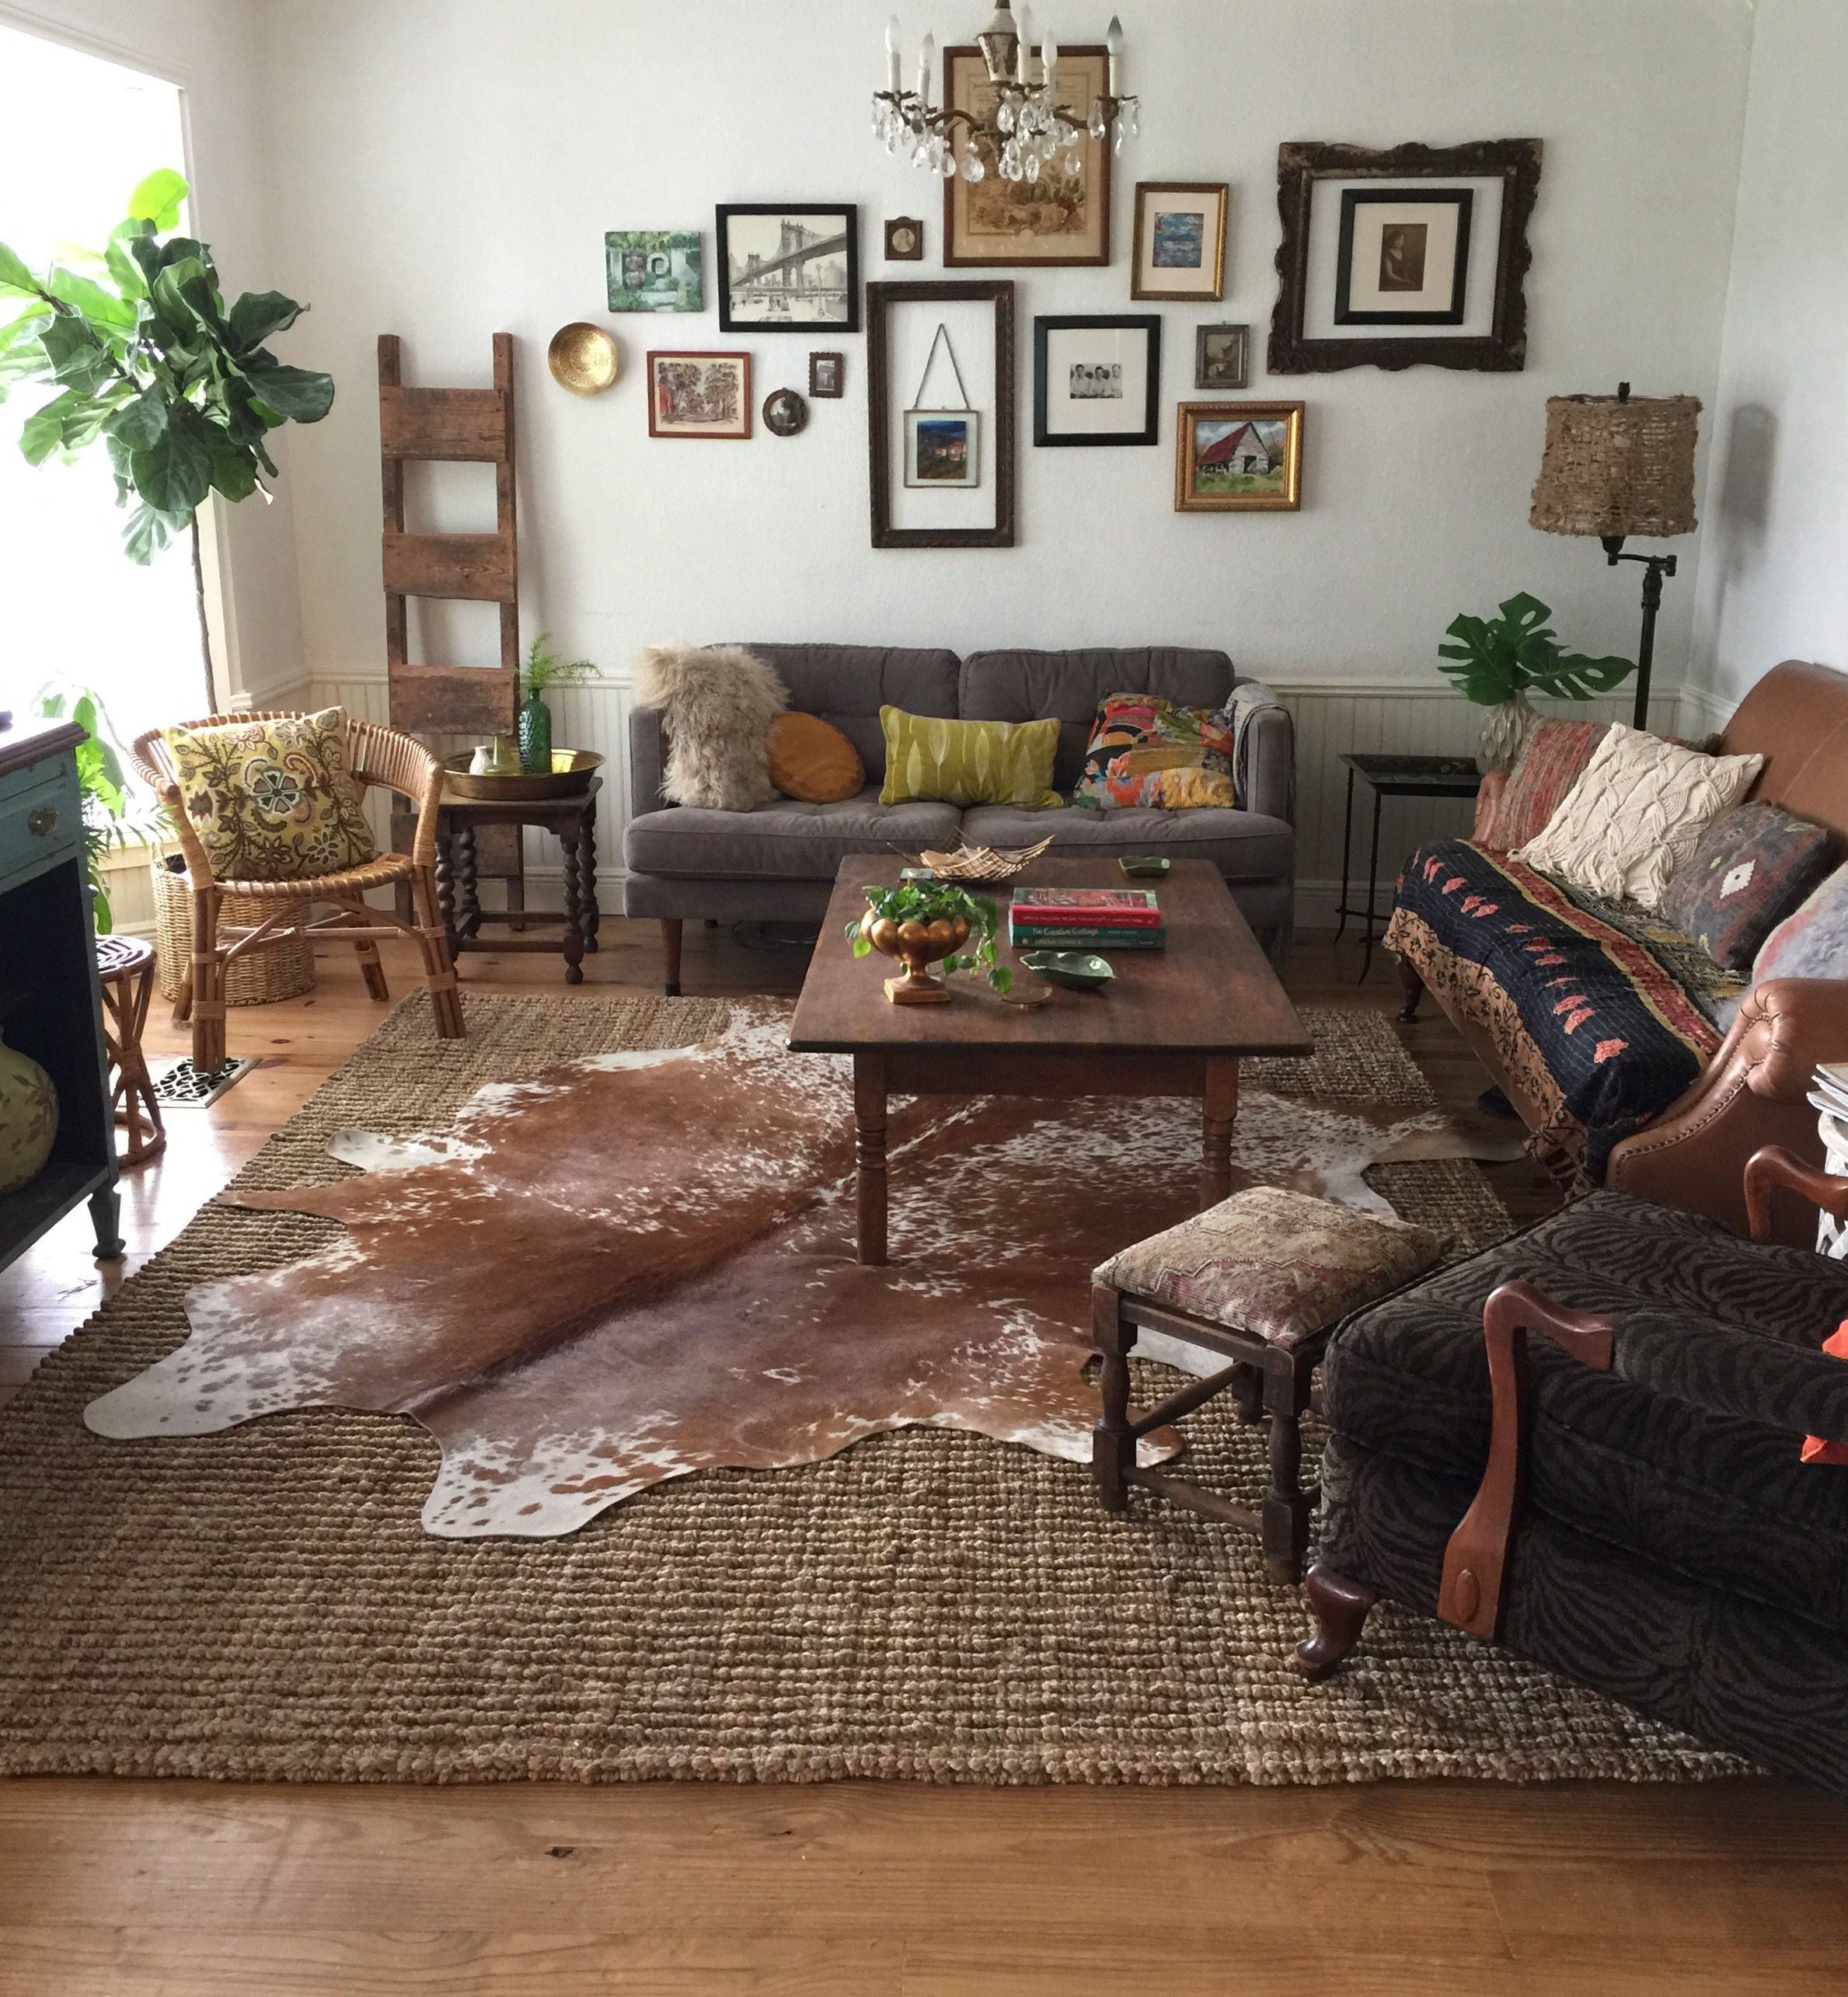 12 Of The Coolest Ways How To Upgrade Cowhide Rug Living Room Ideas Cowhide Rug Living Room Rugs In Living Room Living Room Leather